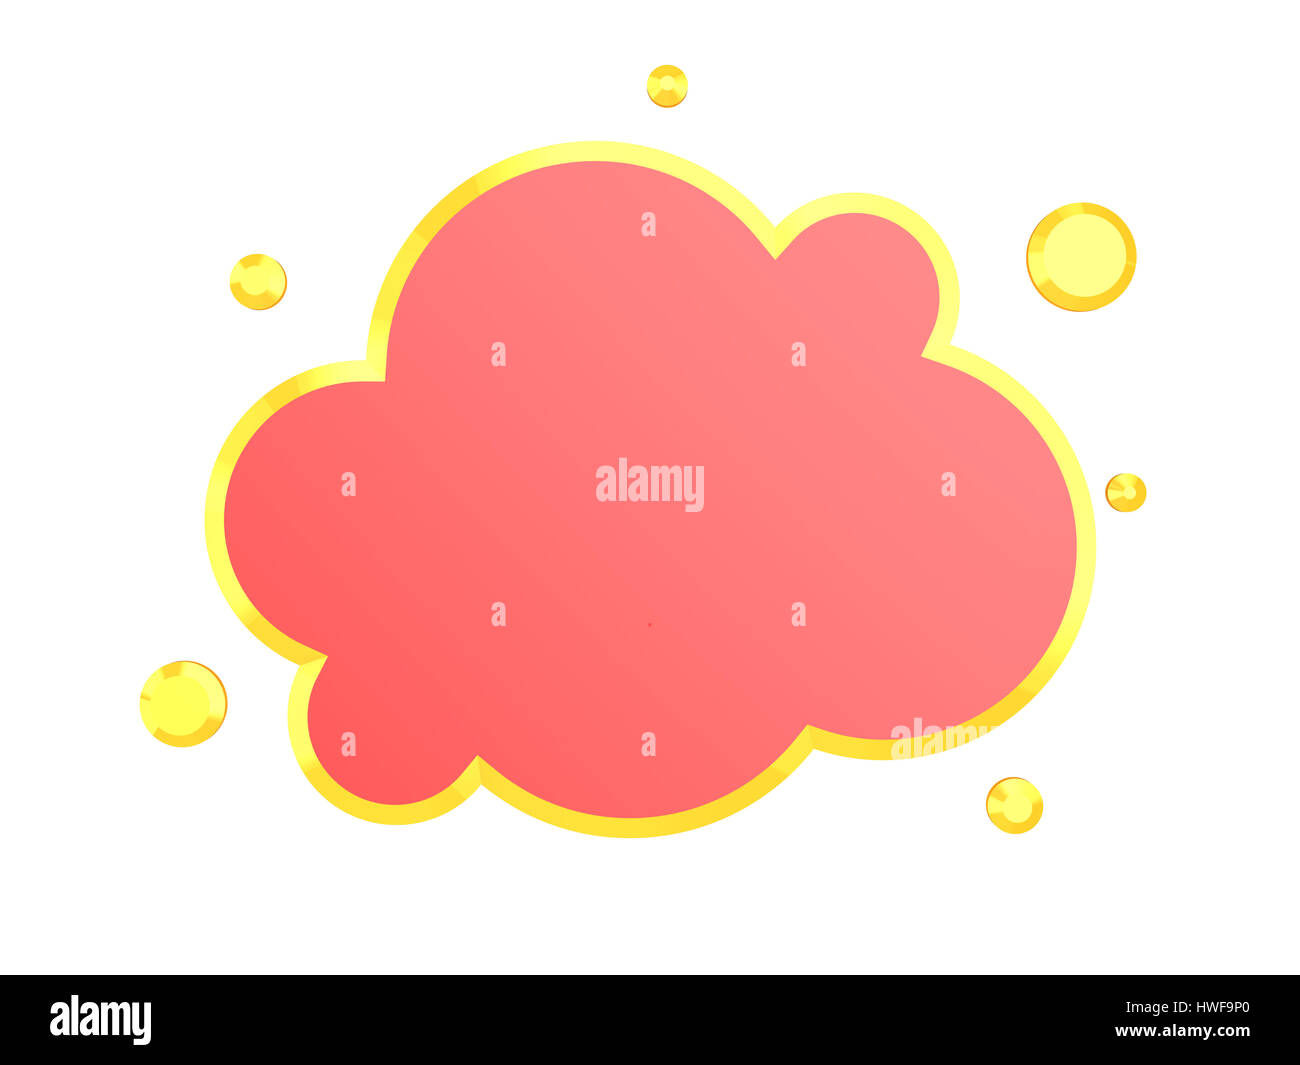 3d illustration of red cloud symbol isolated over white background 3d illustration of red cloud symbol isolated over white background biocorpaavc Gallery